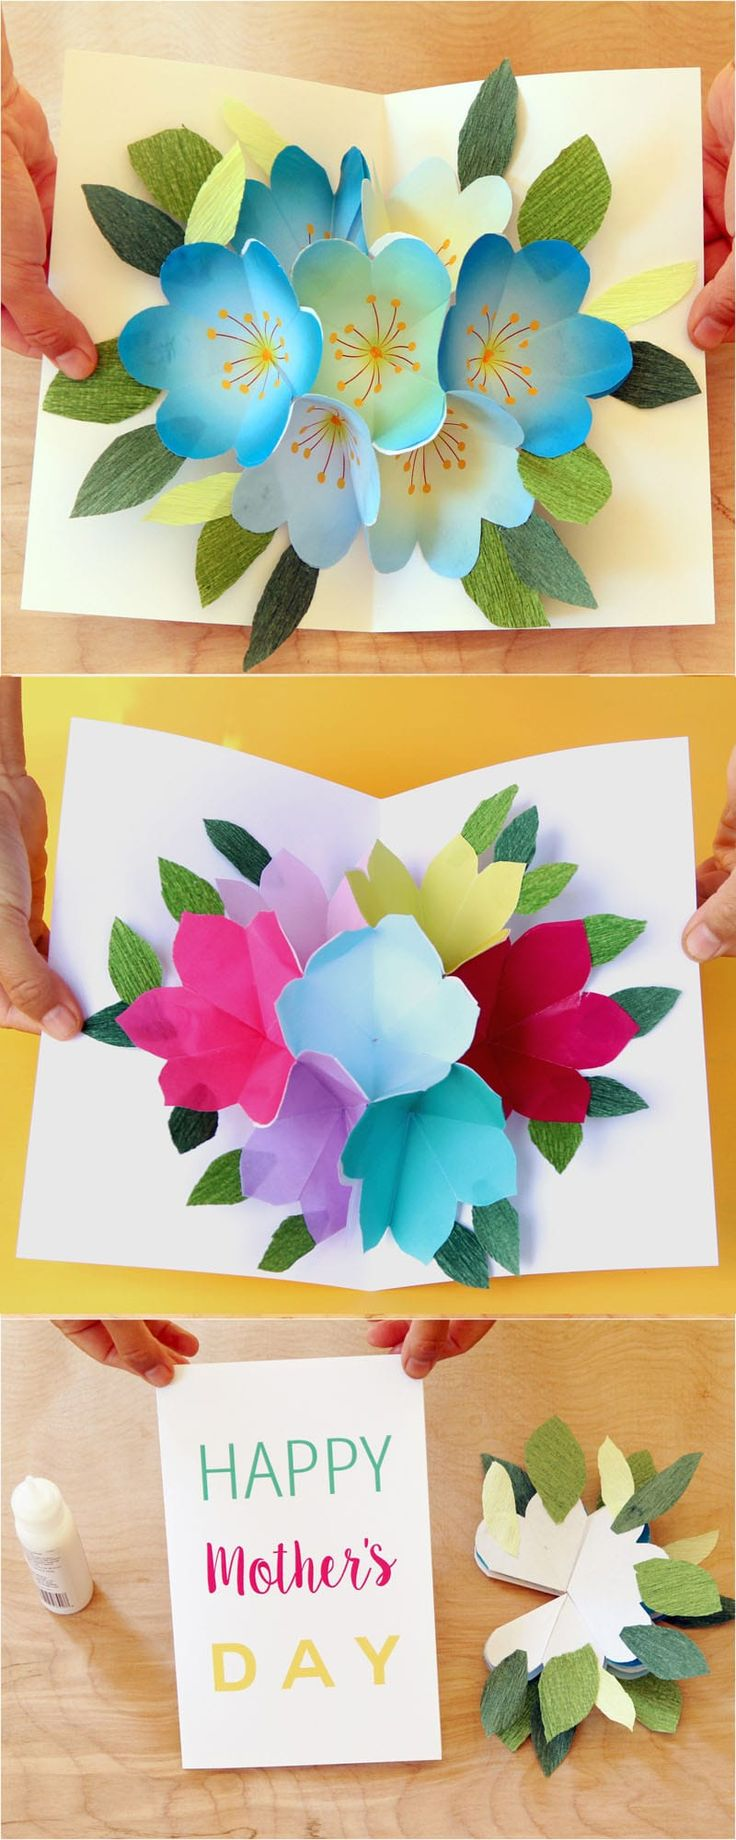 Easy to make Happy Mother's Day Card with gorgeous pop-up flowers in 3 simple steps! Beautiful handmade card with free printable templates, video tutorial and helpful tips I have learned on how to make a great pop up bouquet quickly and easily.